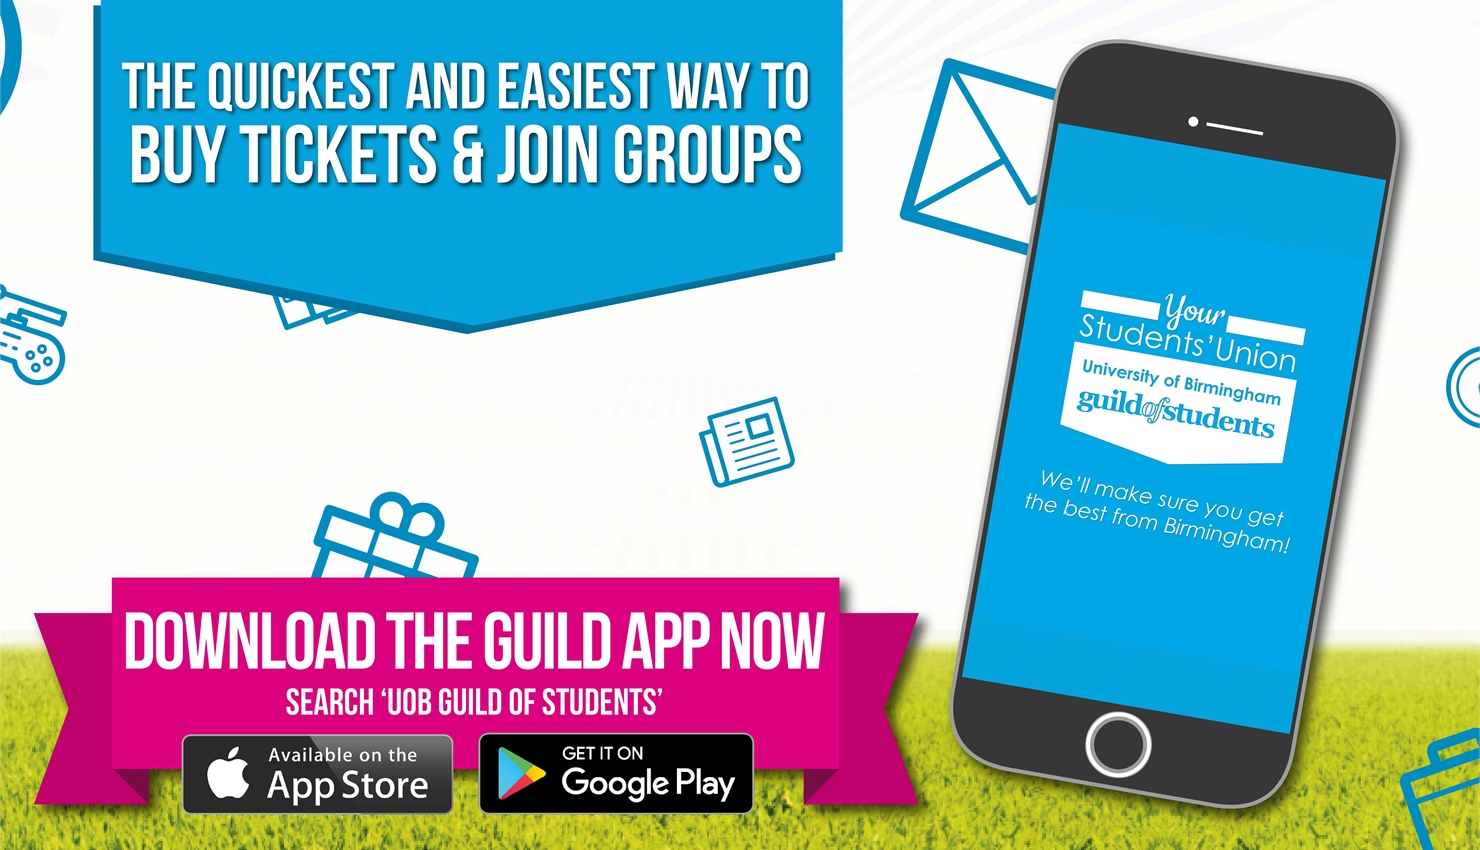 Download the new Guild App - available from iTunes and Google Play Stores NOW!!!